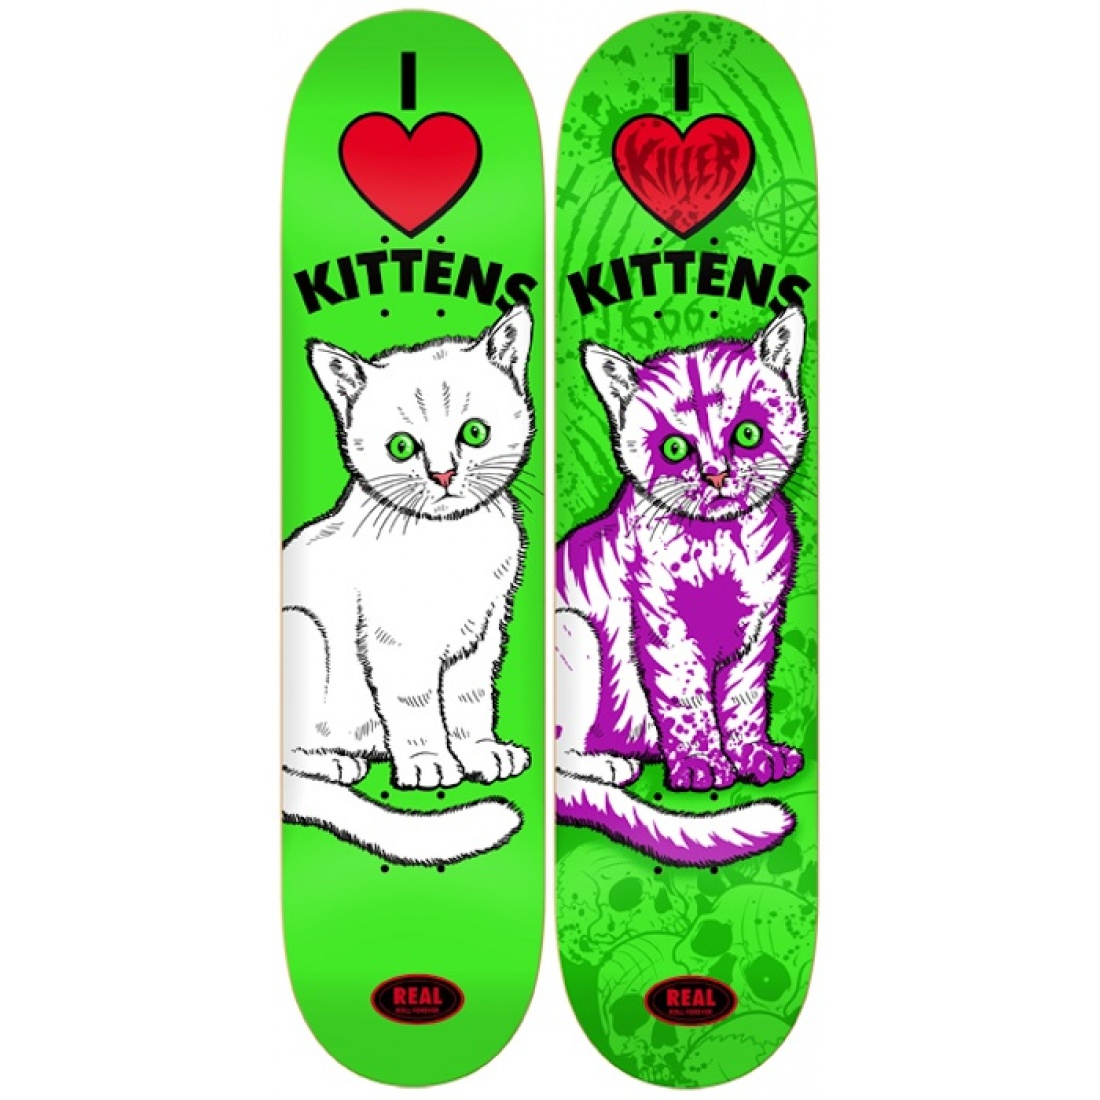 RL-Sunburn Kitty 2nd Degree 8.1 Deck